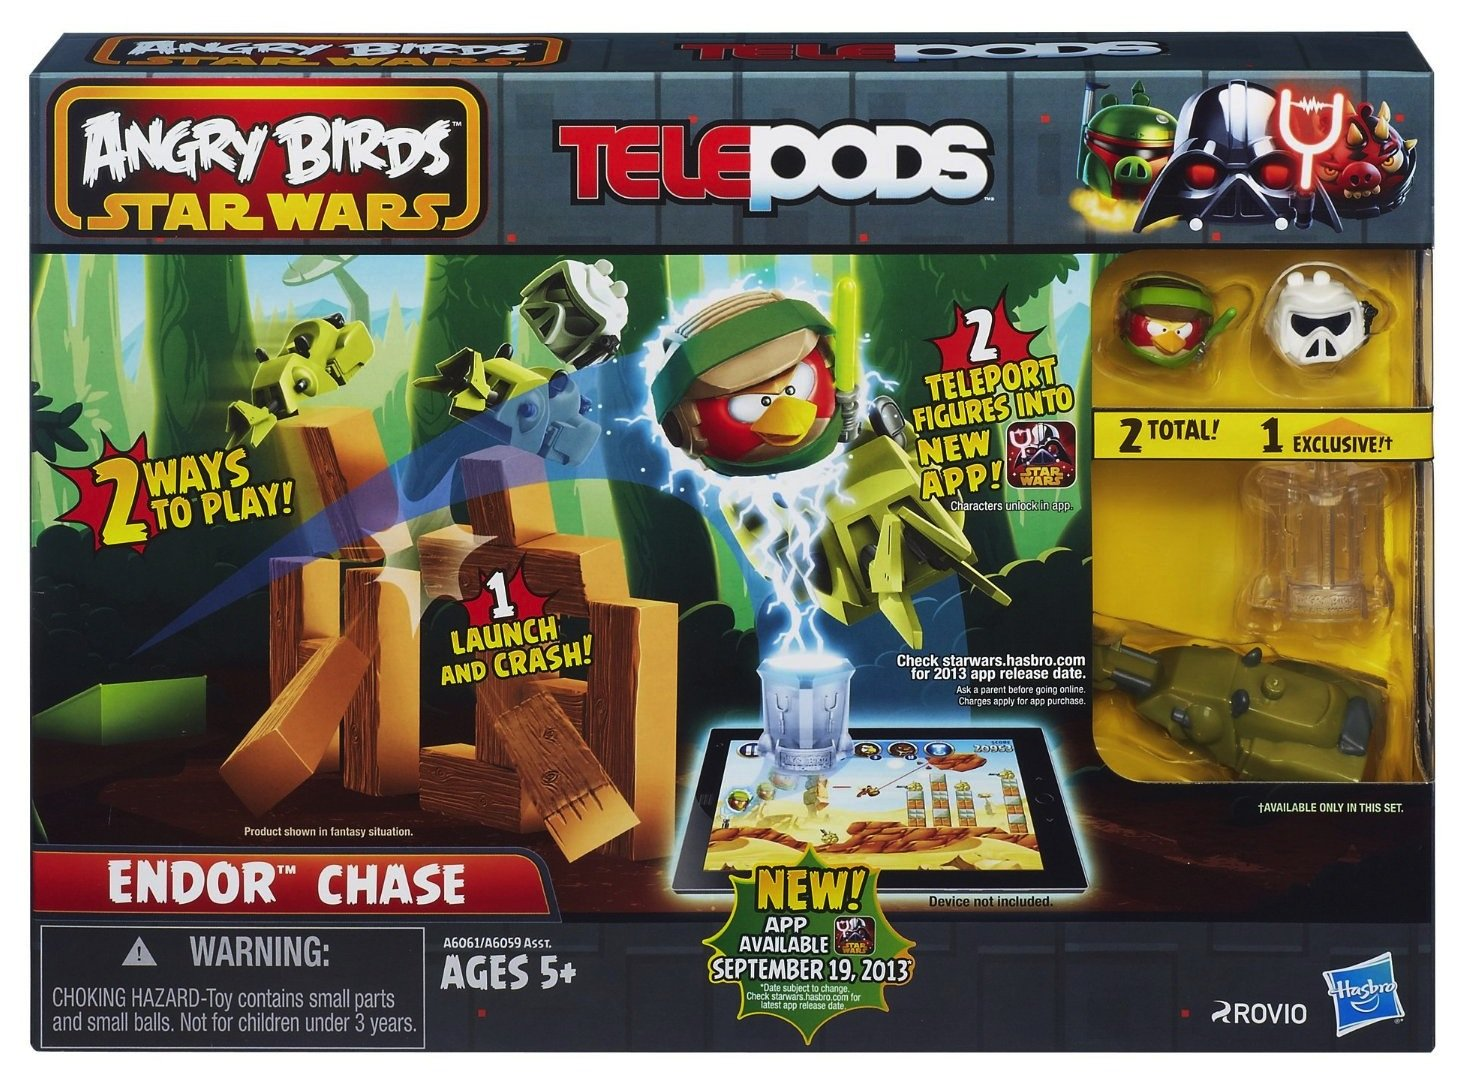 Angry Birds Star Wars Toys : Angry birds star wars telepods review and reader giveaway